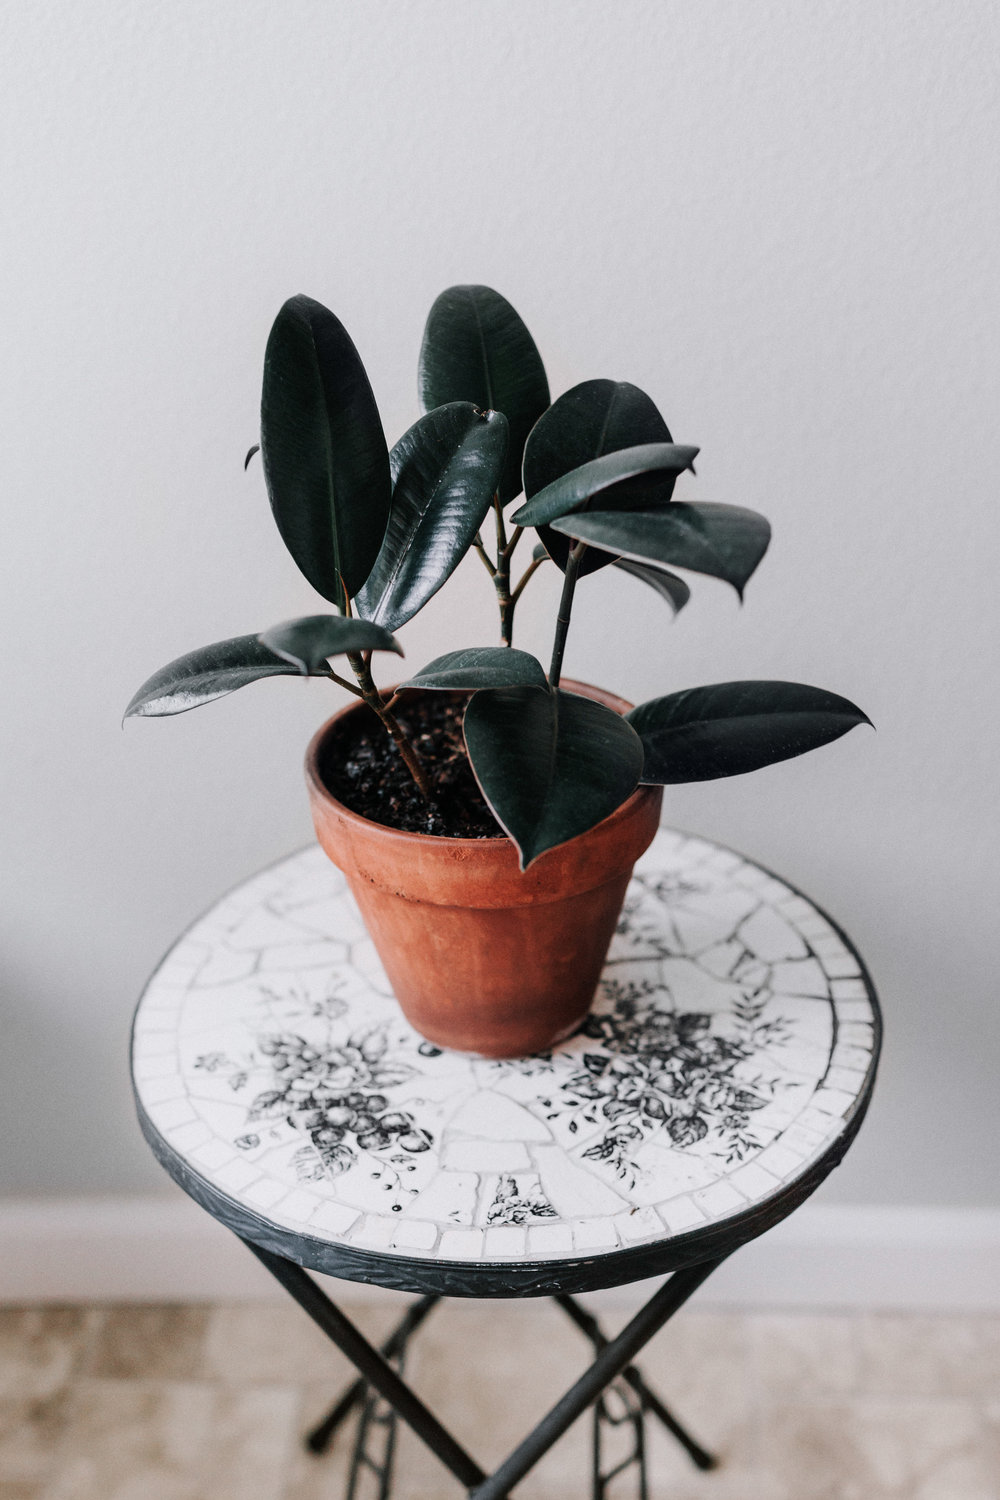 Rubber tree houseplant care guide - An easy care, large houseplant - Want to find your perfect houseplant? Take the quiz!